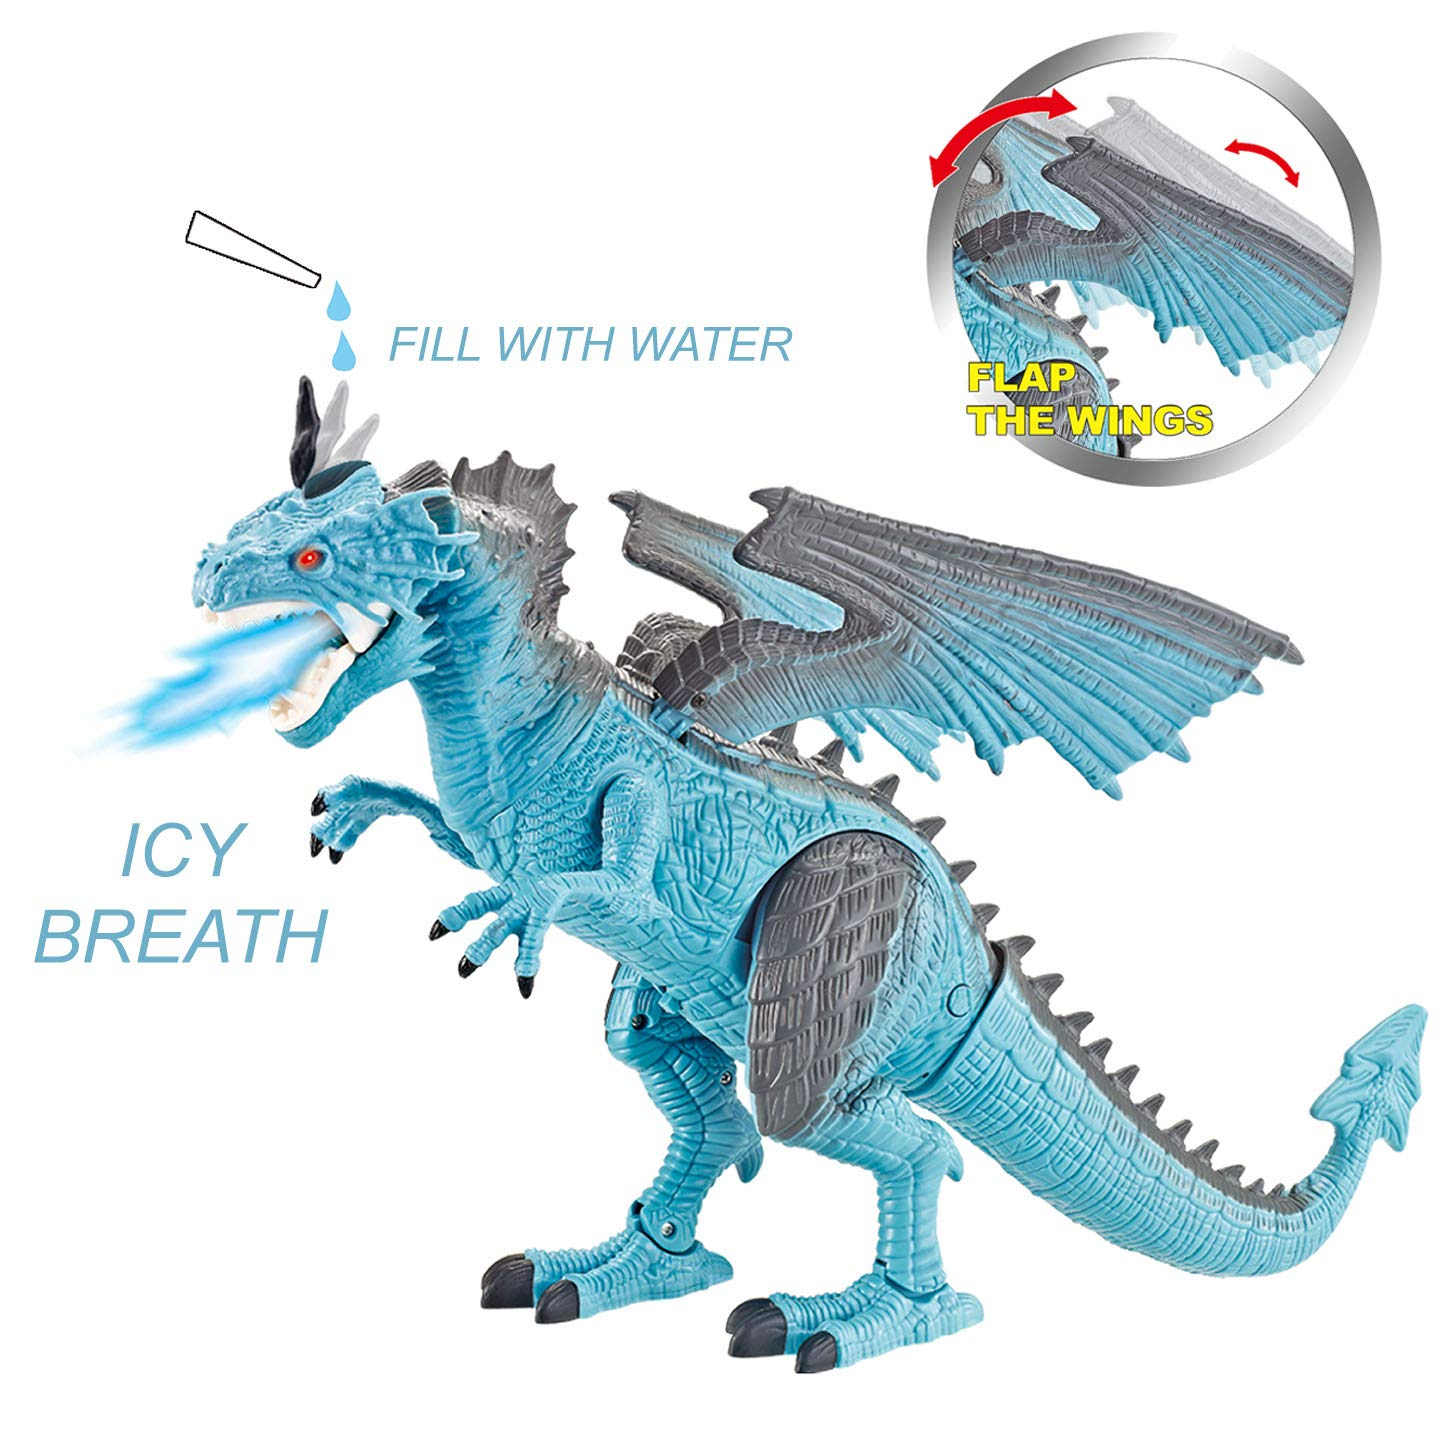 Liberty Imports Dino Planet Remote Control RC Walking Dinosaur Toy with Breathing Smoke, Shaking Head, Light Up Eyes and Sounds (Ice Dragon (with Smoke)) by Liberty Imports (Image #4)